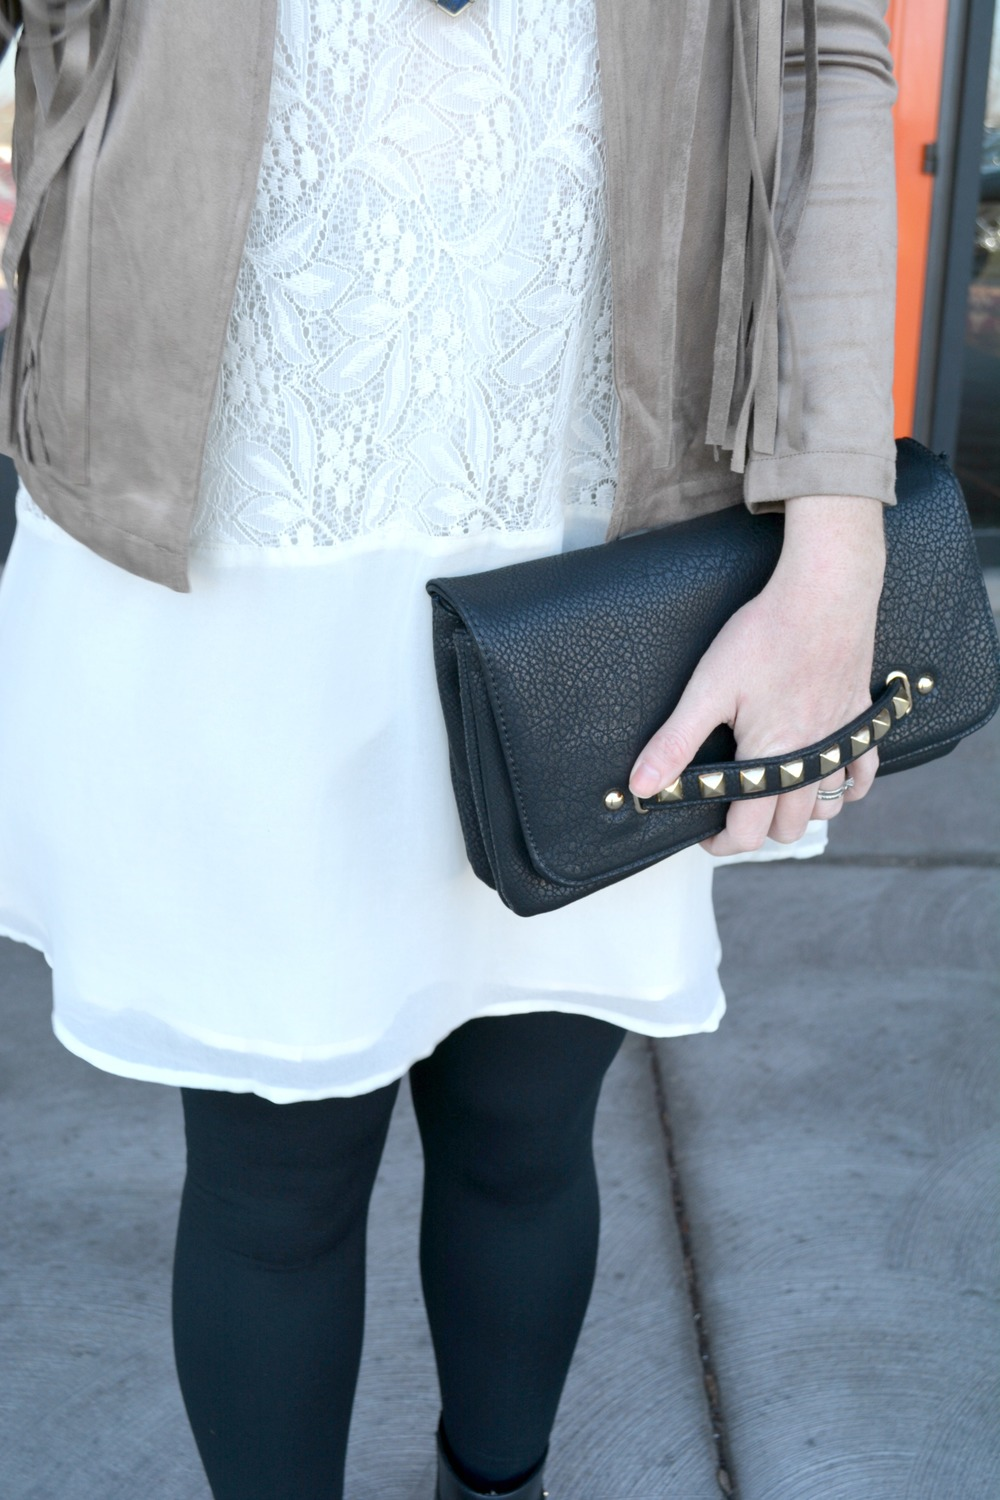 White lace dress and suede fringe jacket spring look